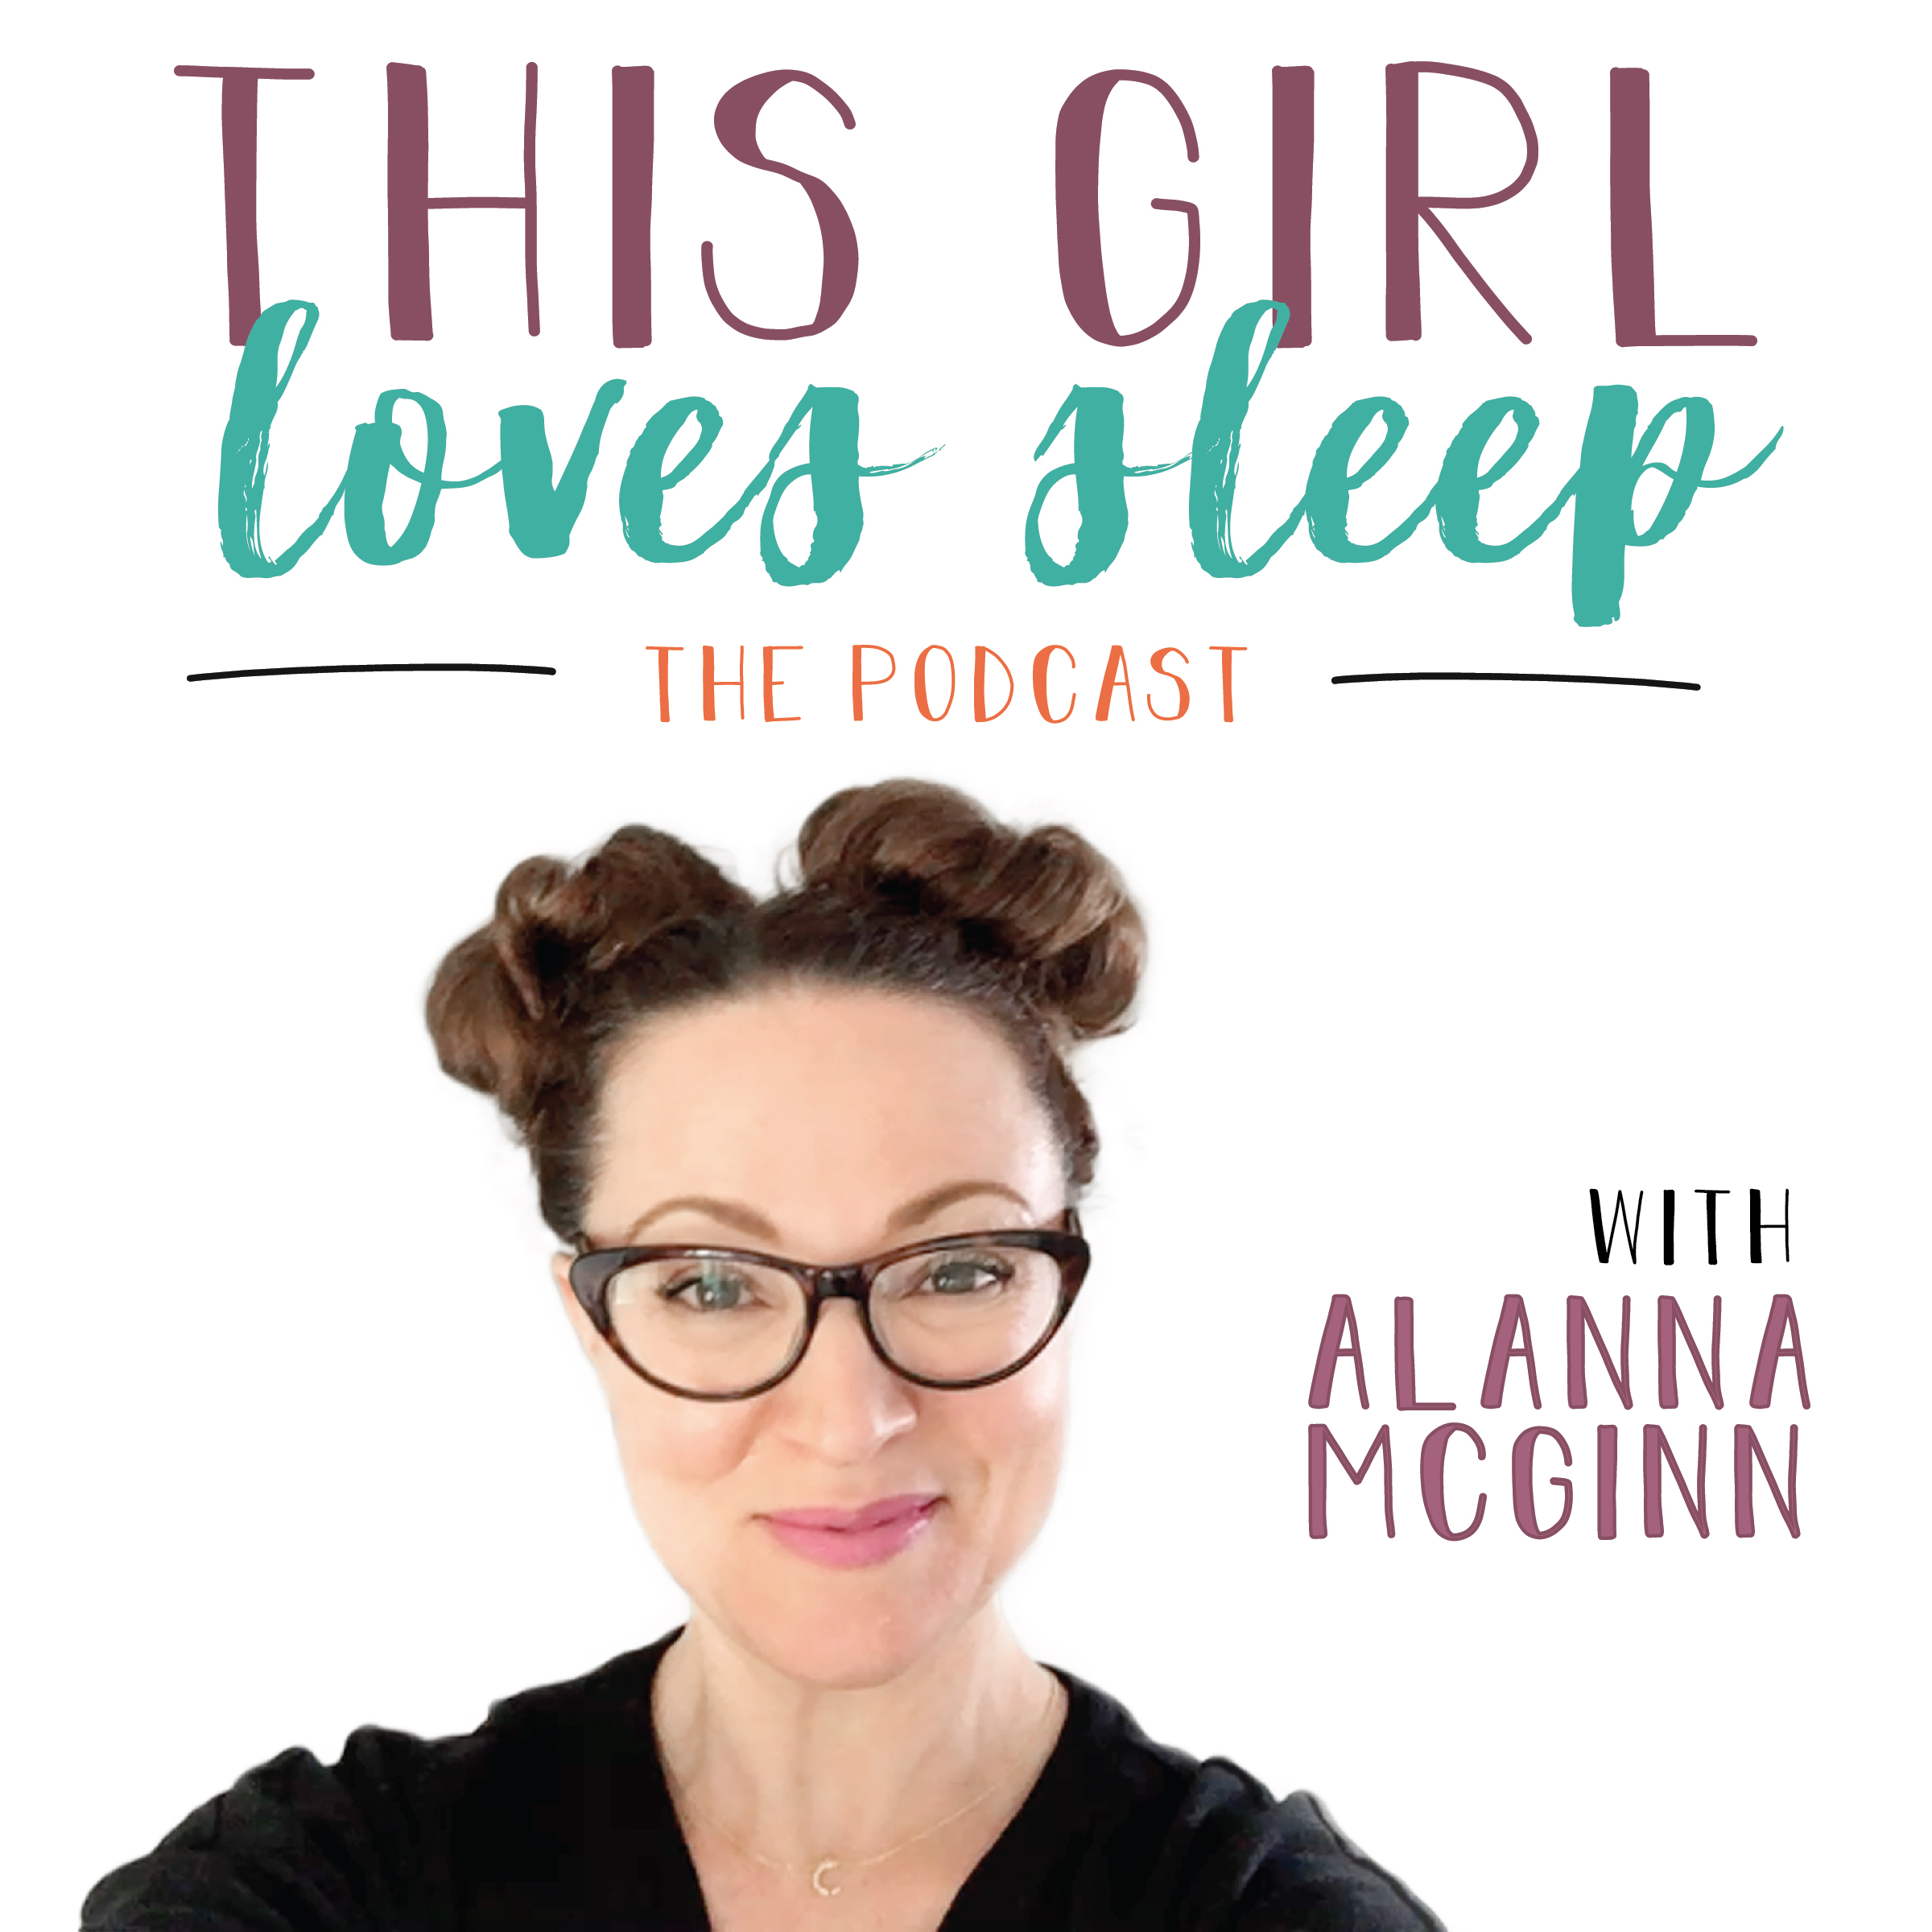 Episode 23: Transition from 2 to 1 Naps